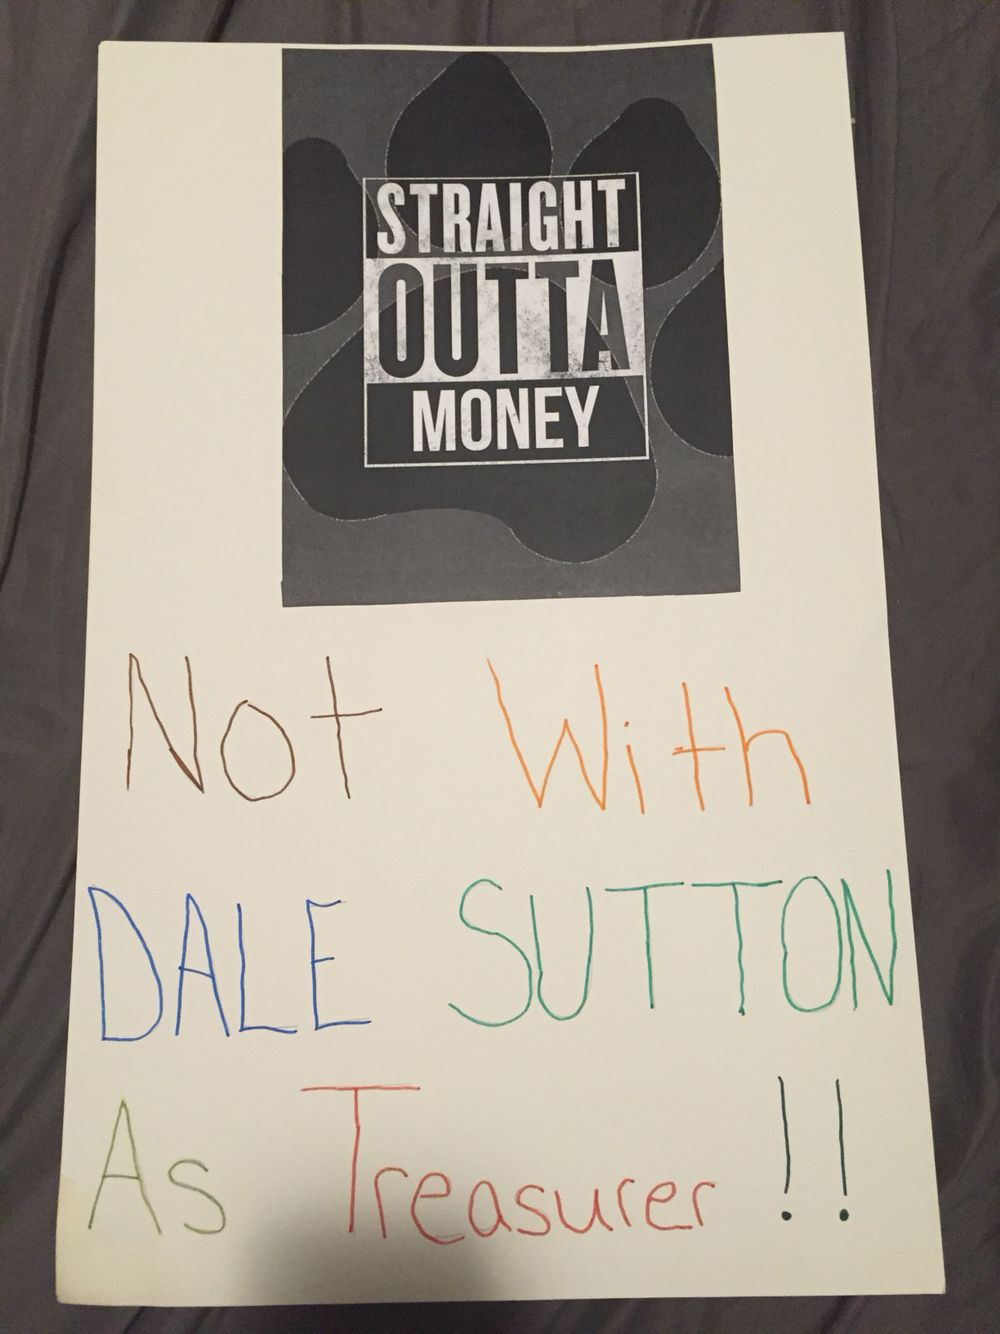 Treasurer poster Student council, Straight outta money